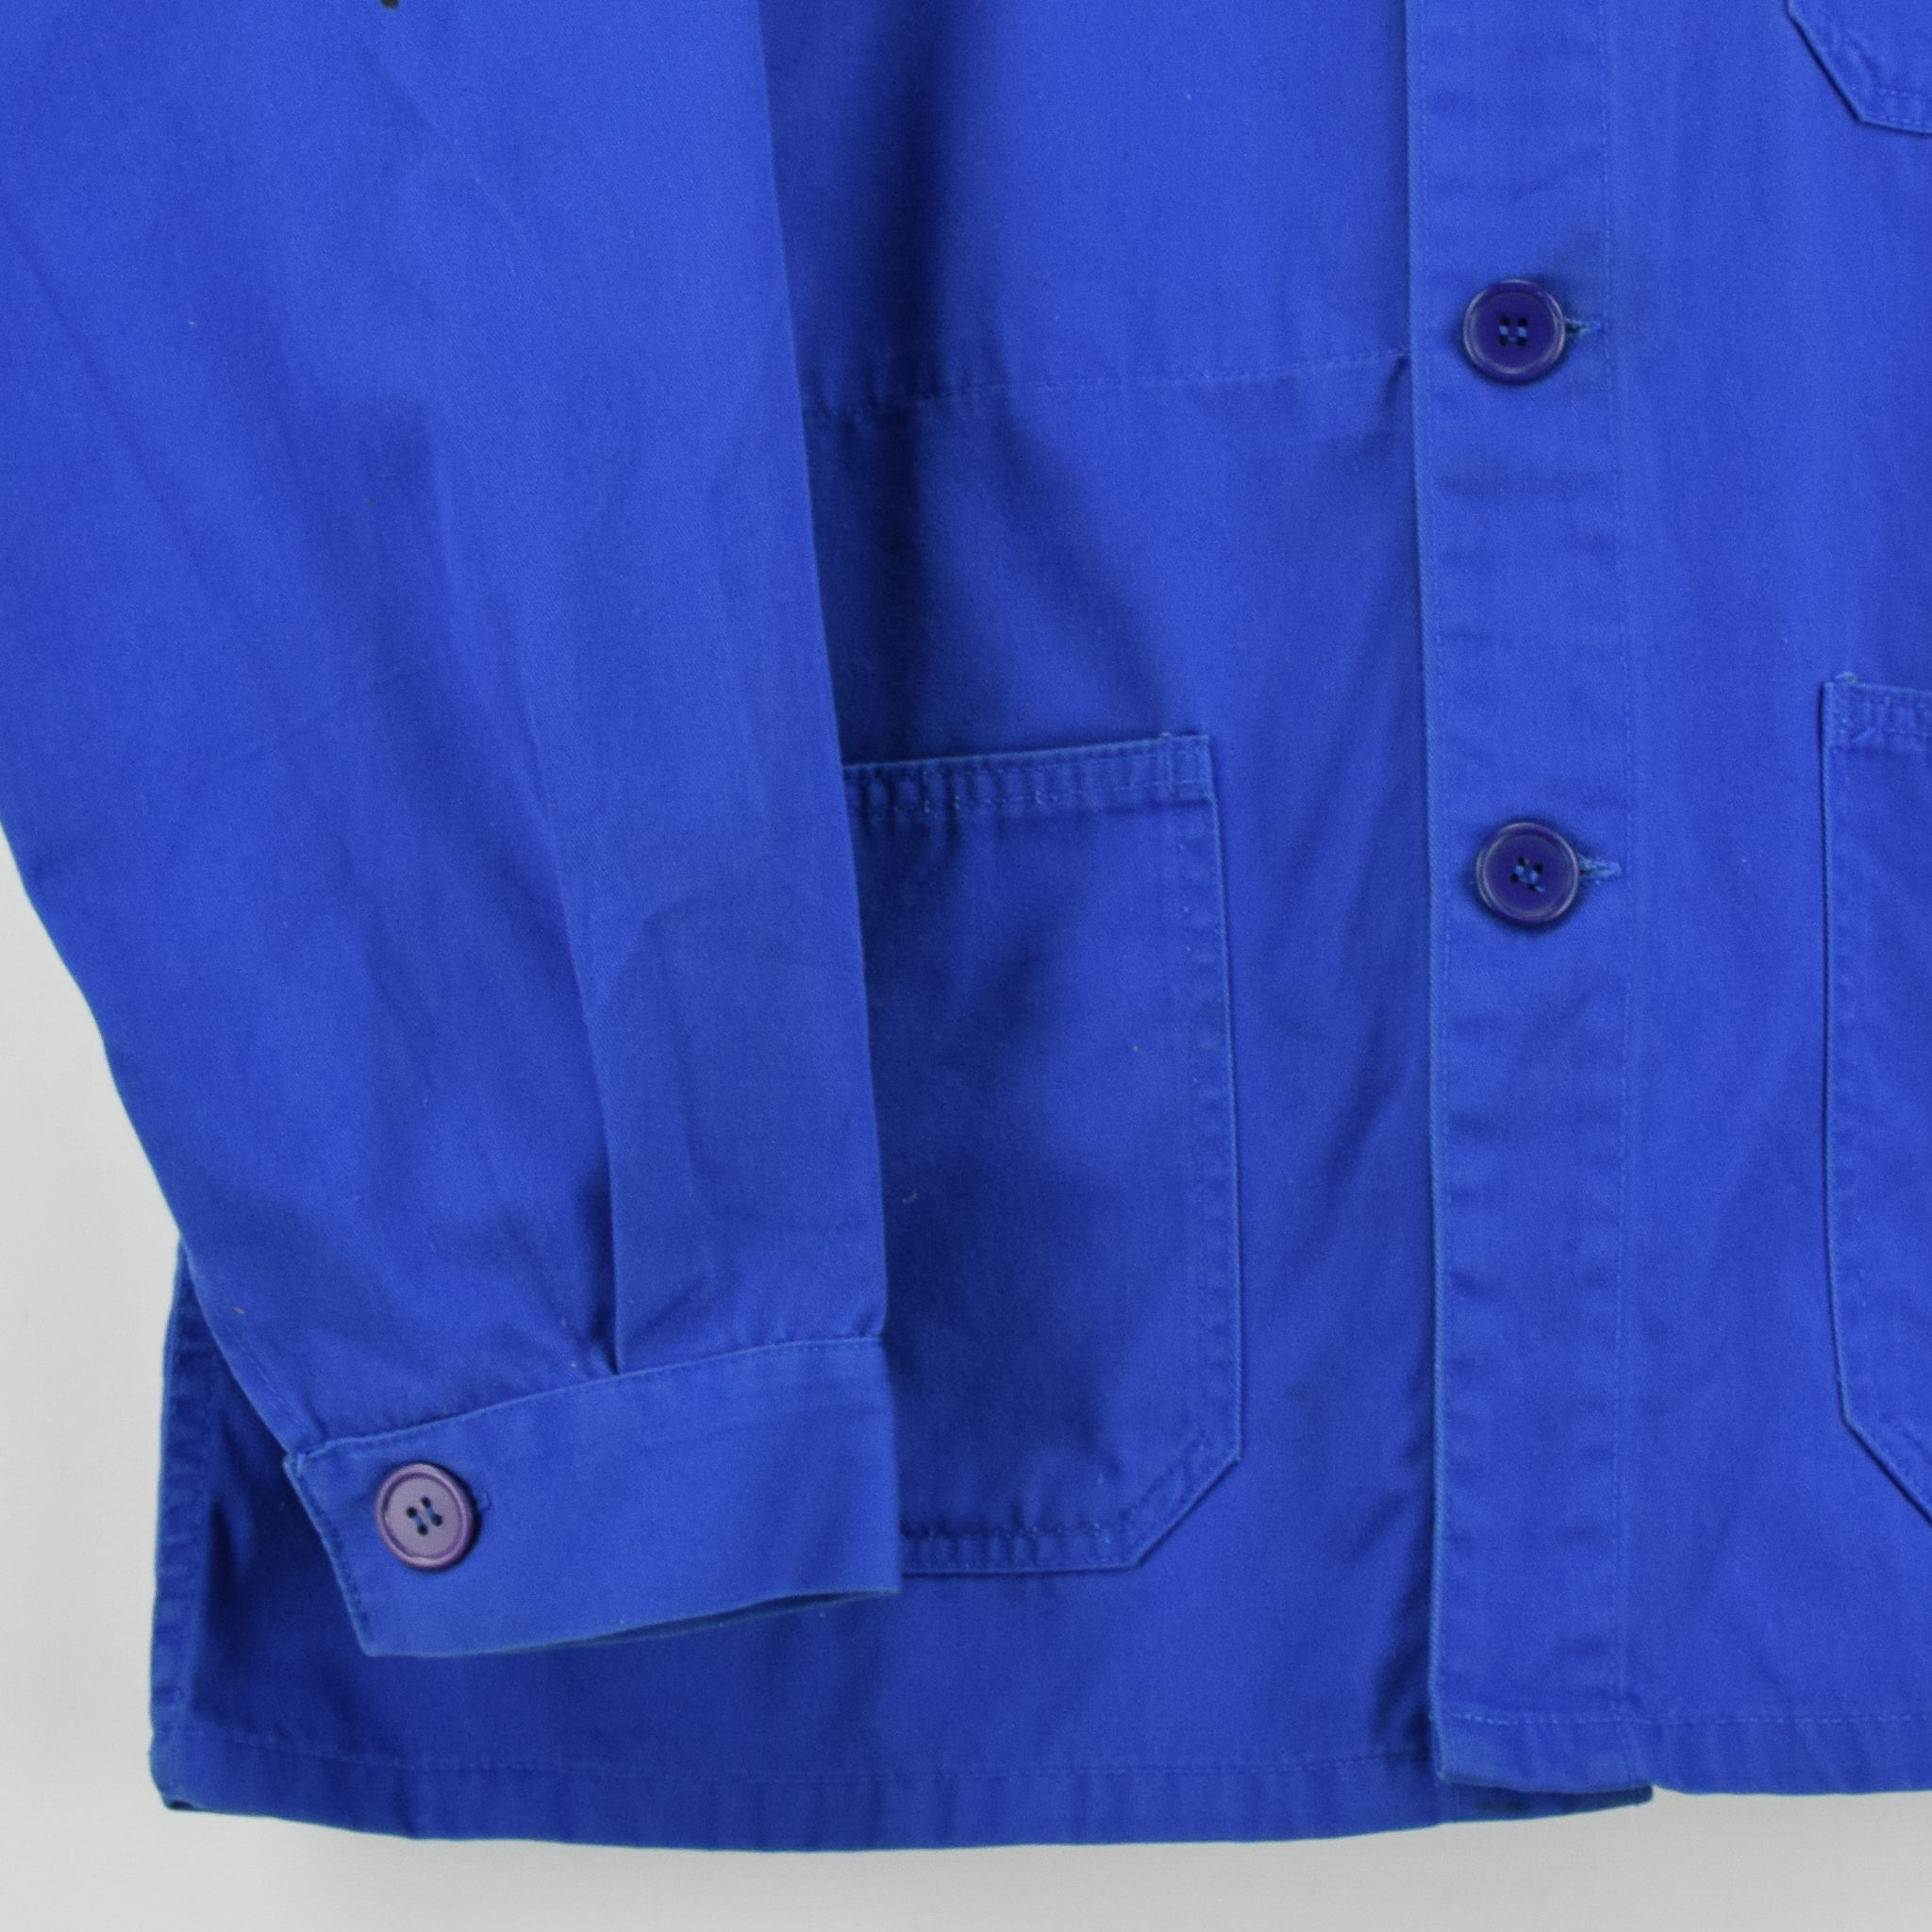 Vintage Bright Blue French Style Worker Sanforized Cotton Chore Jacket L front hem